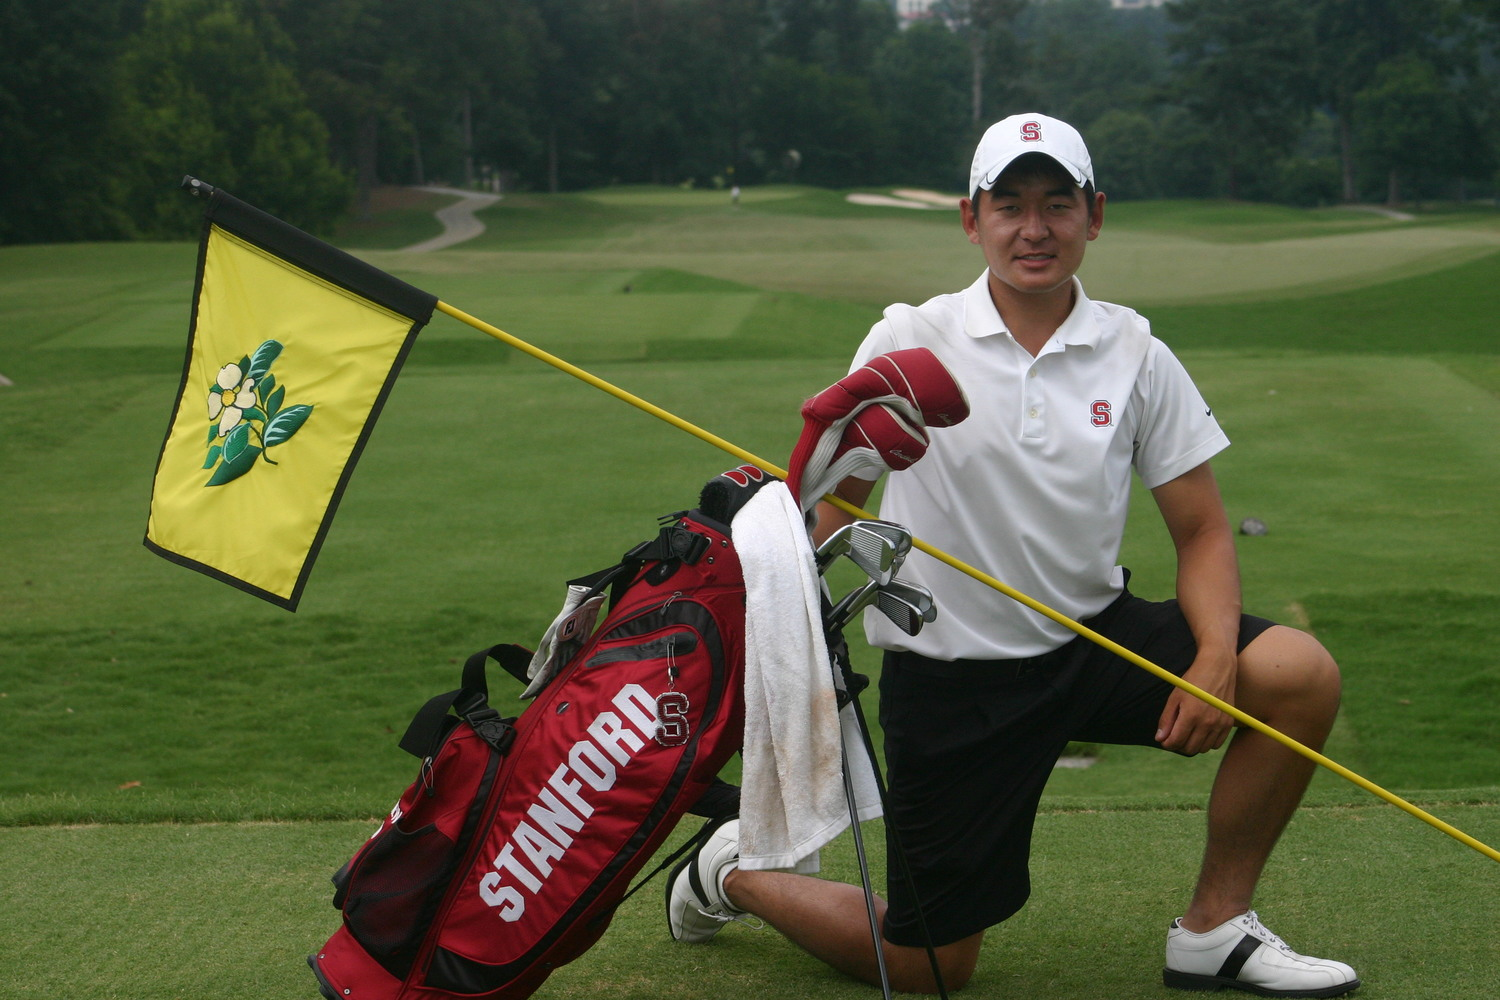 Andrew Yun - Winner at 2010 Dogwood Invitational. Finished Stanford career with 3rd lowest scoring average of 71.5 behind only Tiger Woods and Patrick Rodgers